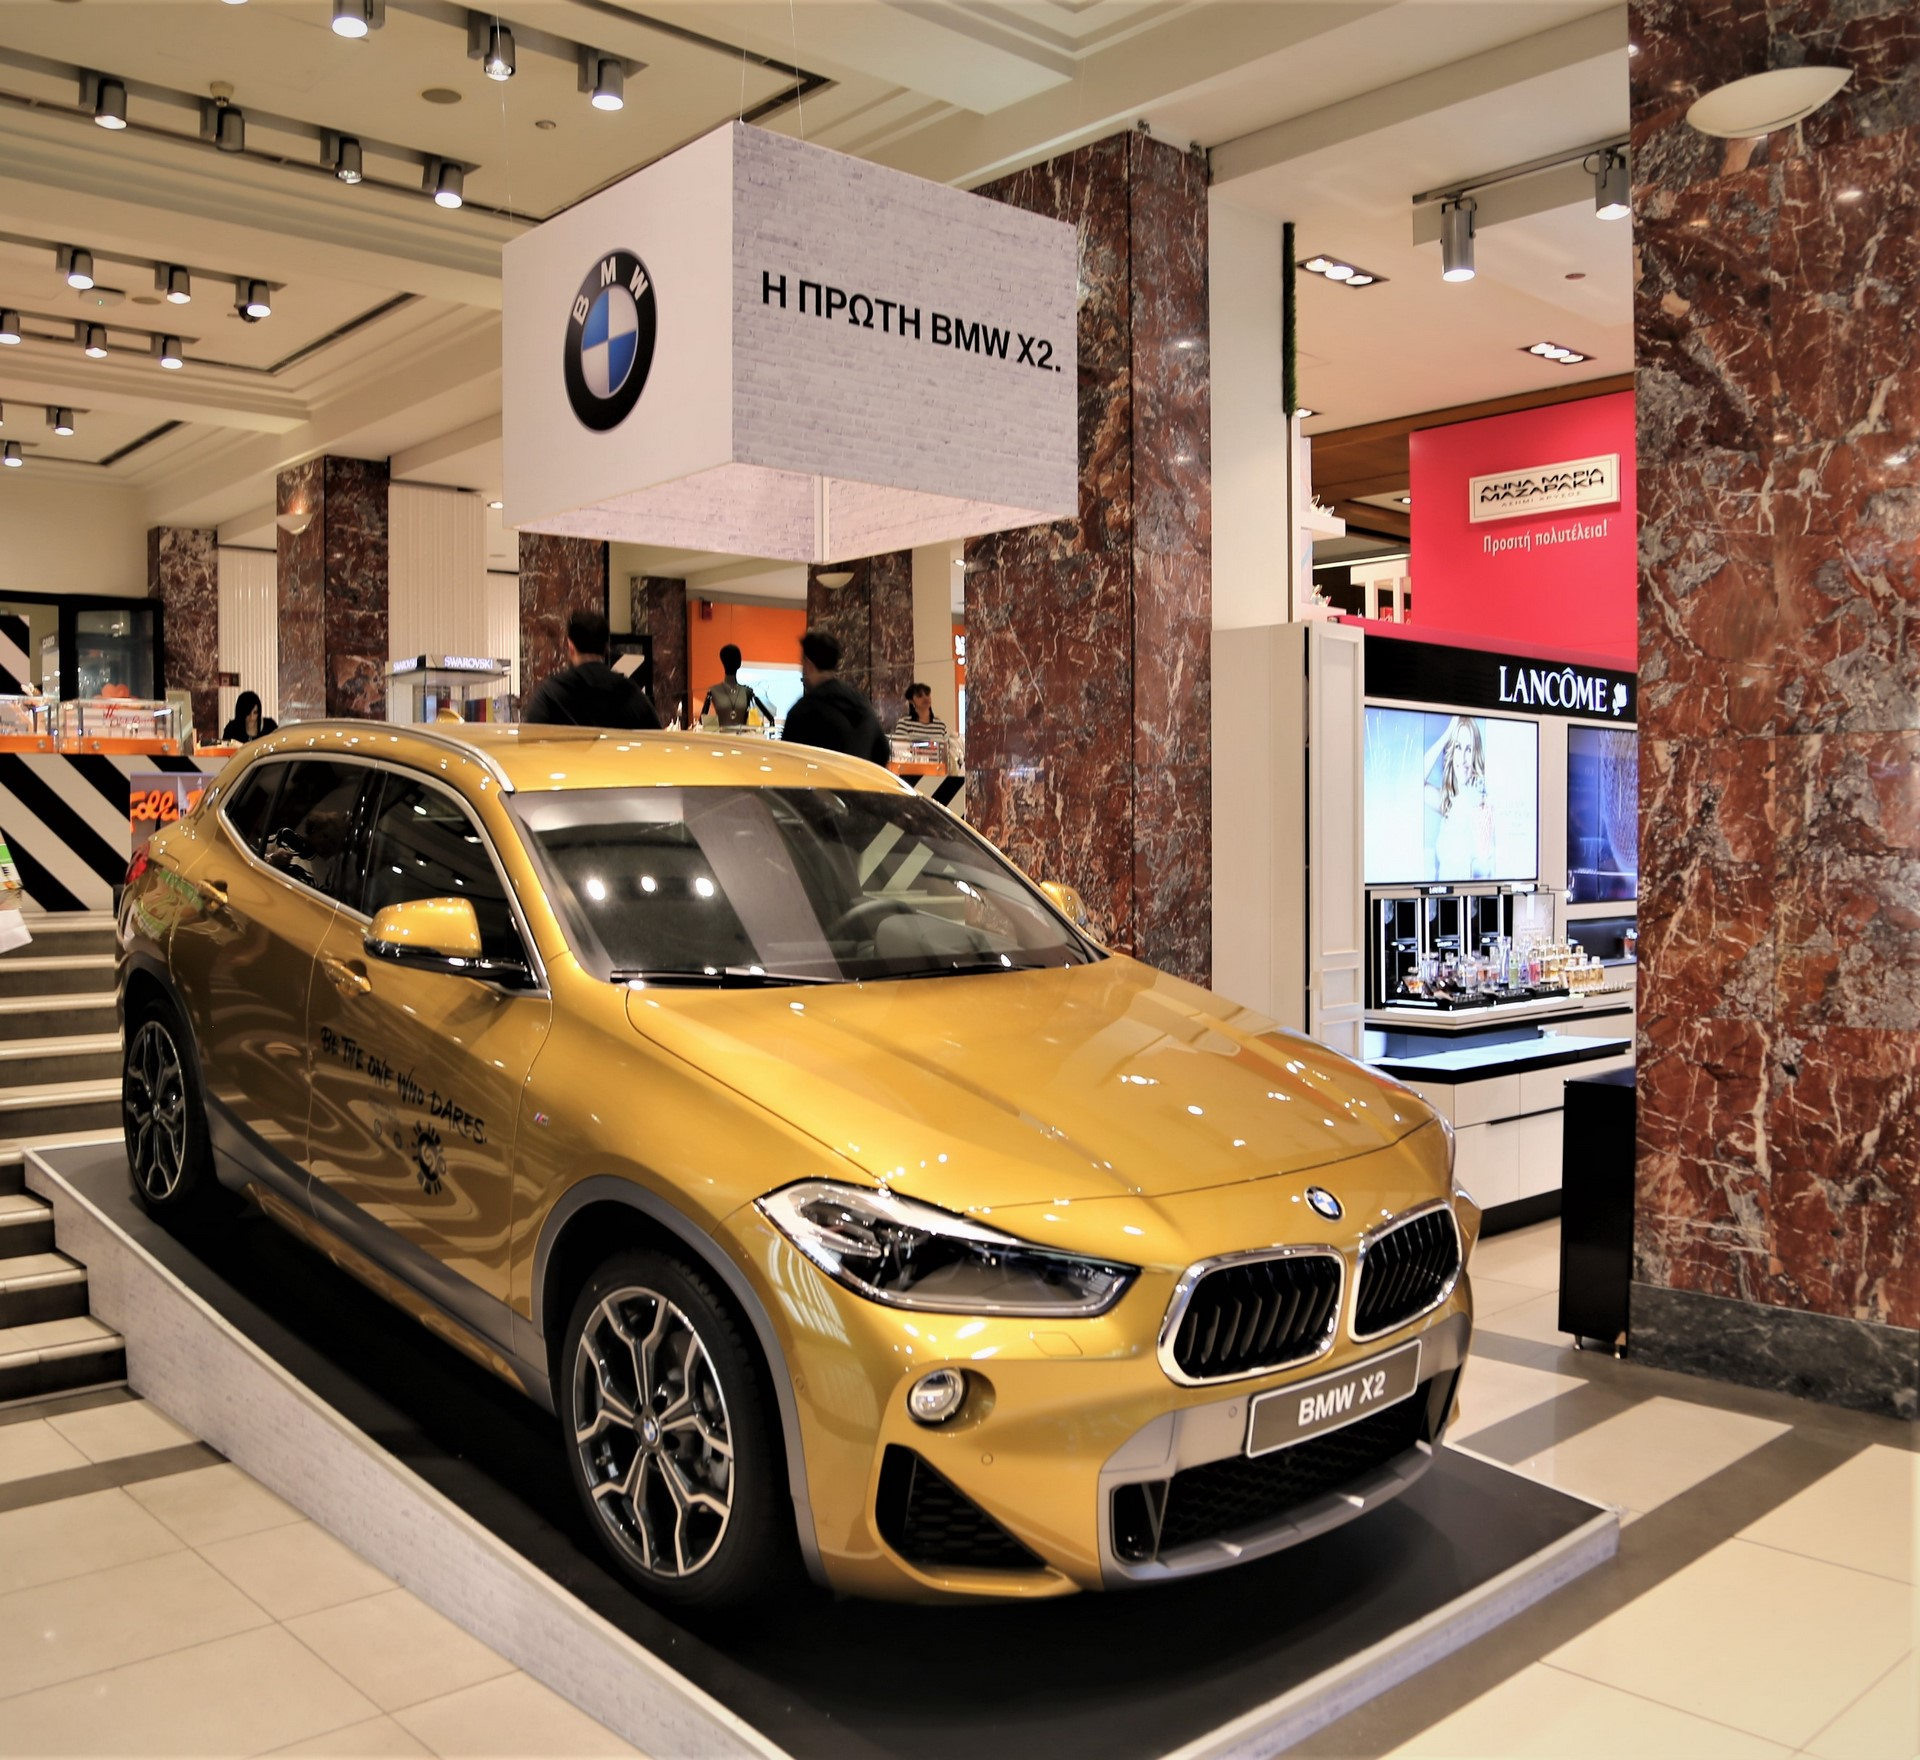 BMW X2 Greek 2018 (19)